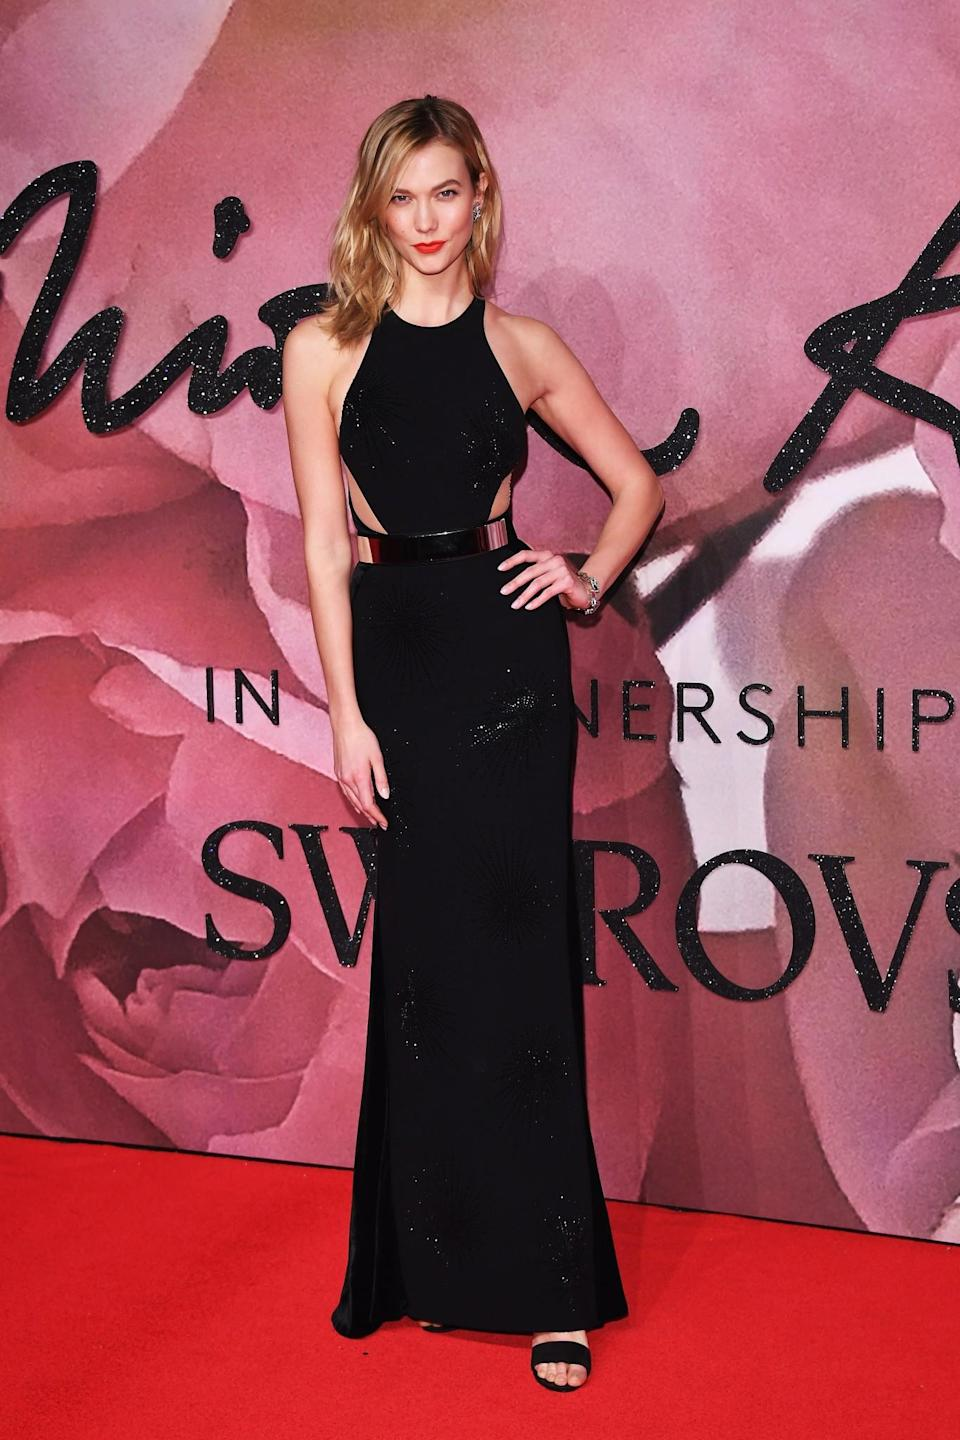 <p>The 24-year-old model chose a sparkly black gown with cutouts. She styled her hair in loose waves and added some color with a bold red lip. (Photo: Getty Images) </p>